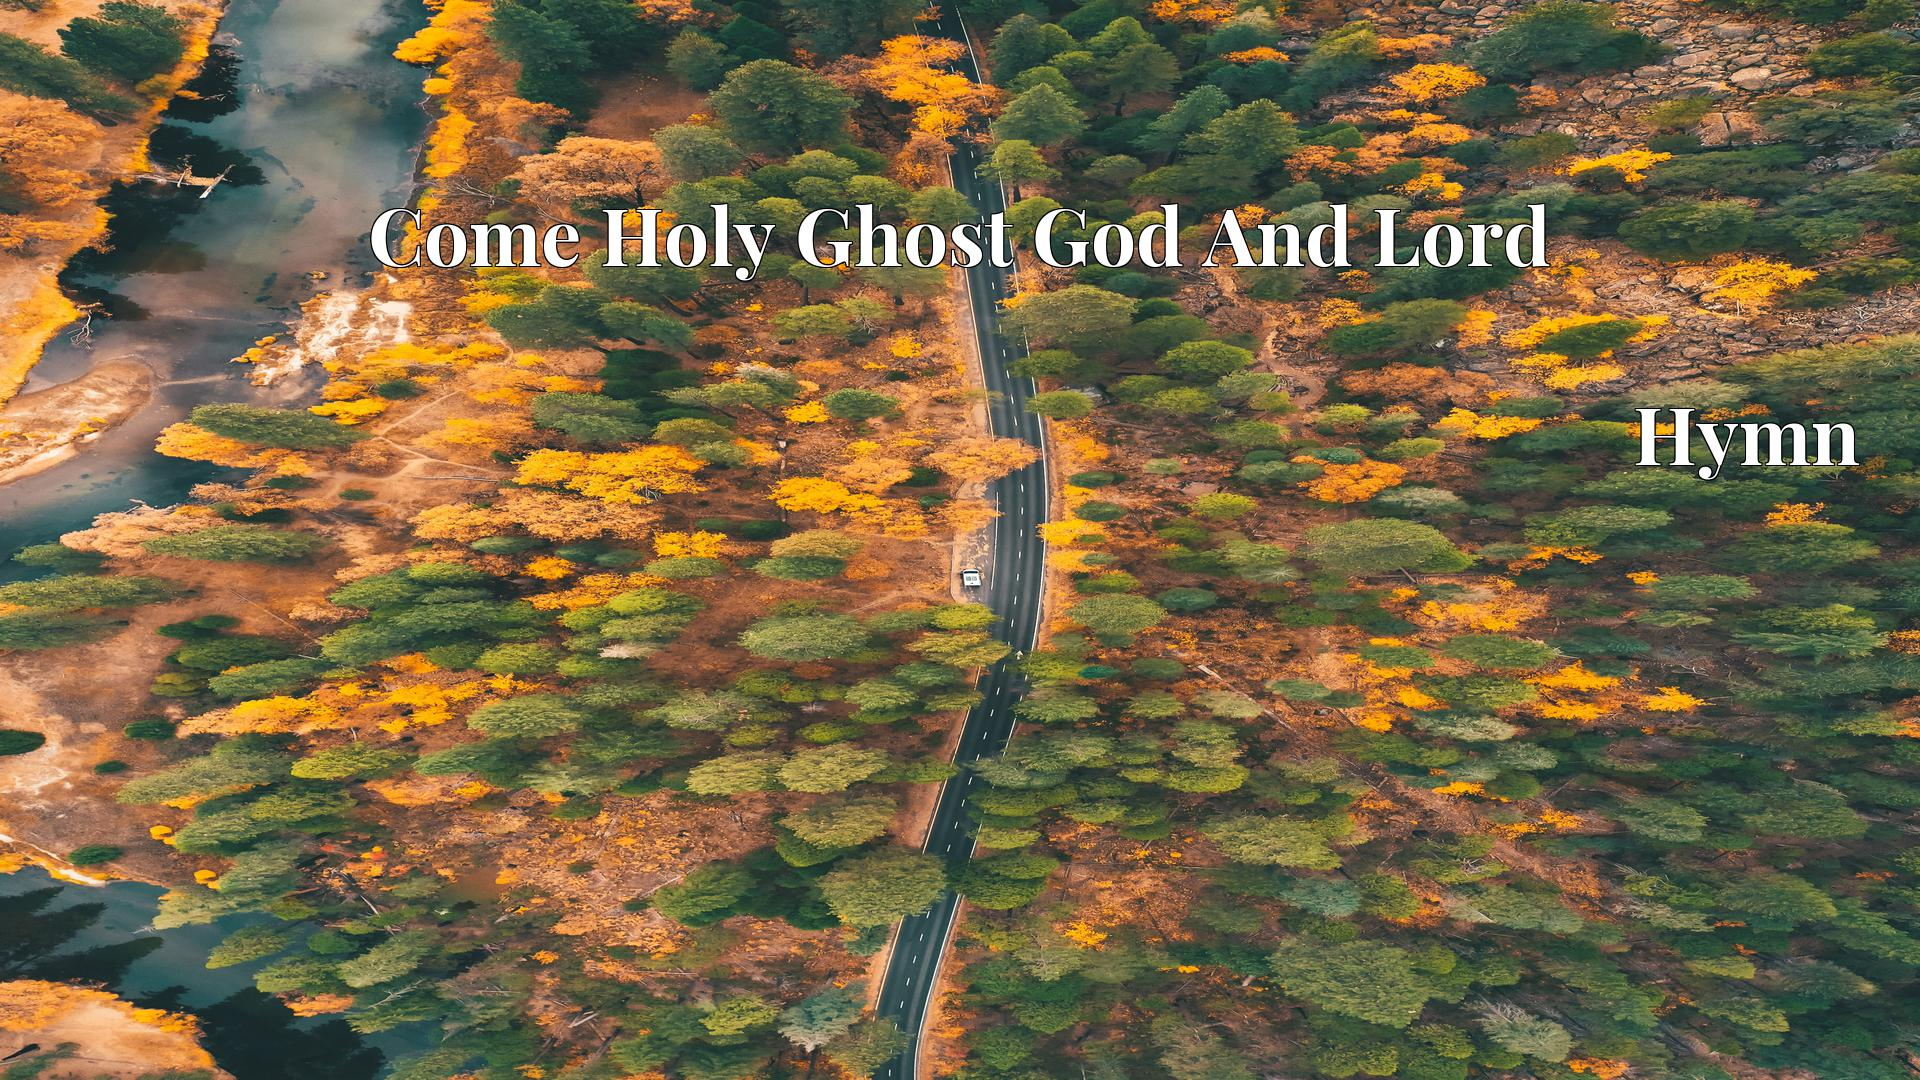 Come Holy Ghost God And Lord - Hymn